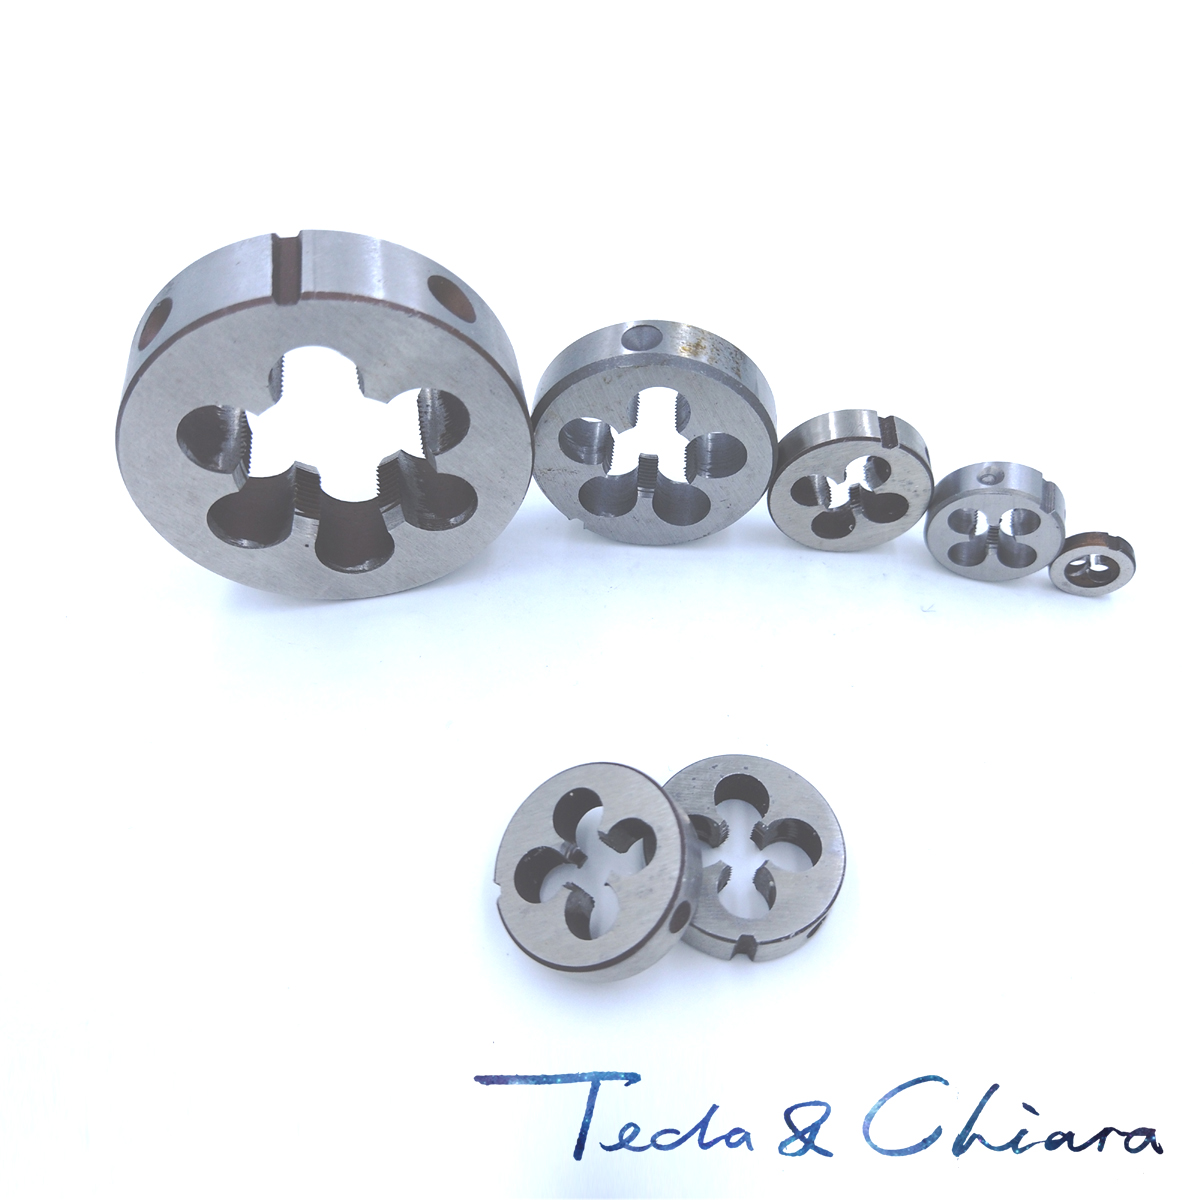 1Pc 3/8-28 3/8-32 3/8-36 3/8-40 UN UNEF UNS Right Hand Die TPI Threading Tools For Mold Machining 3/8 3/8